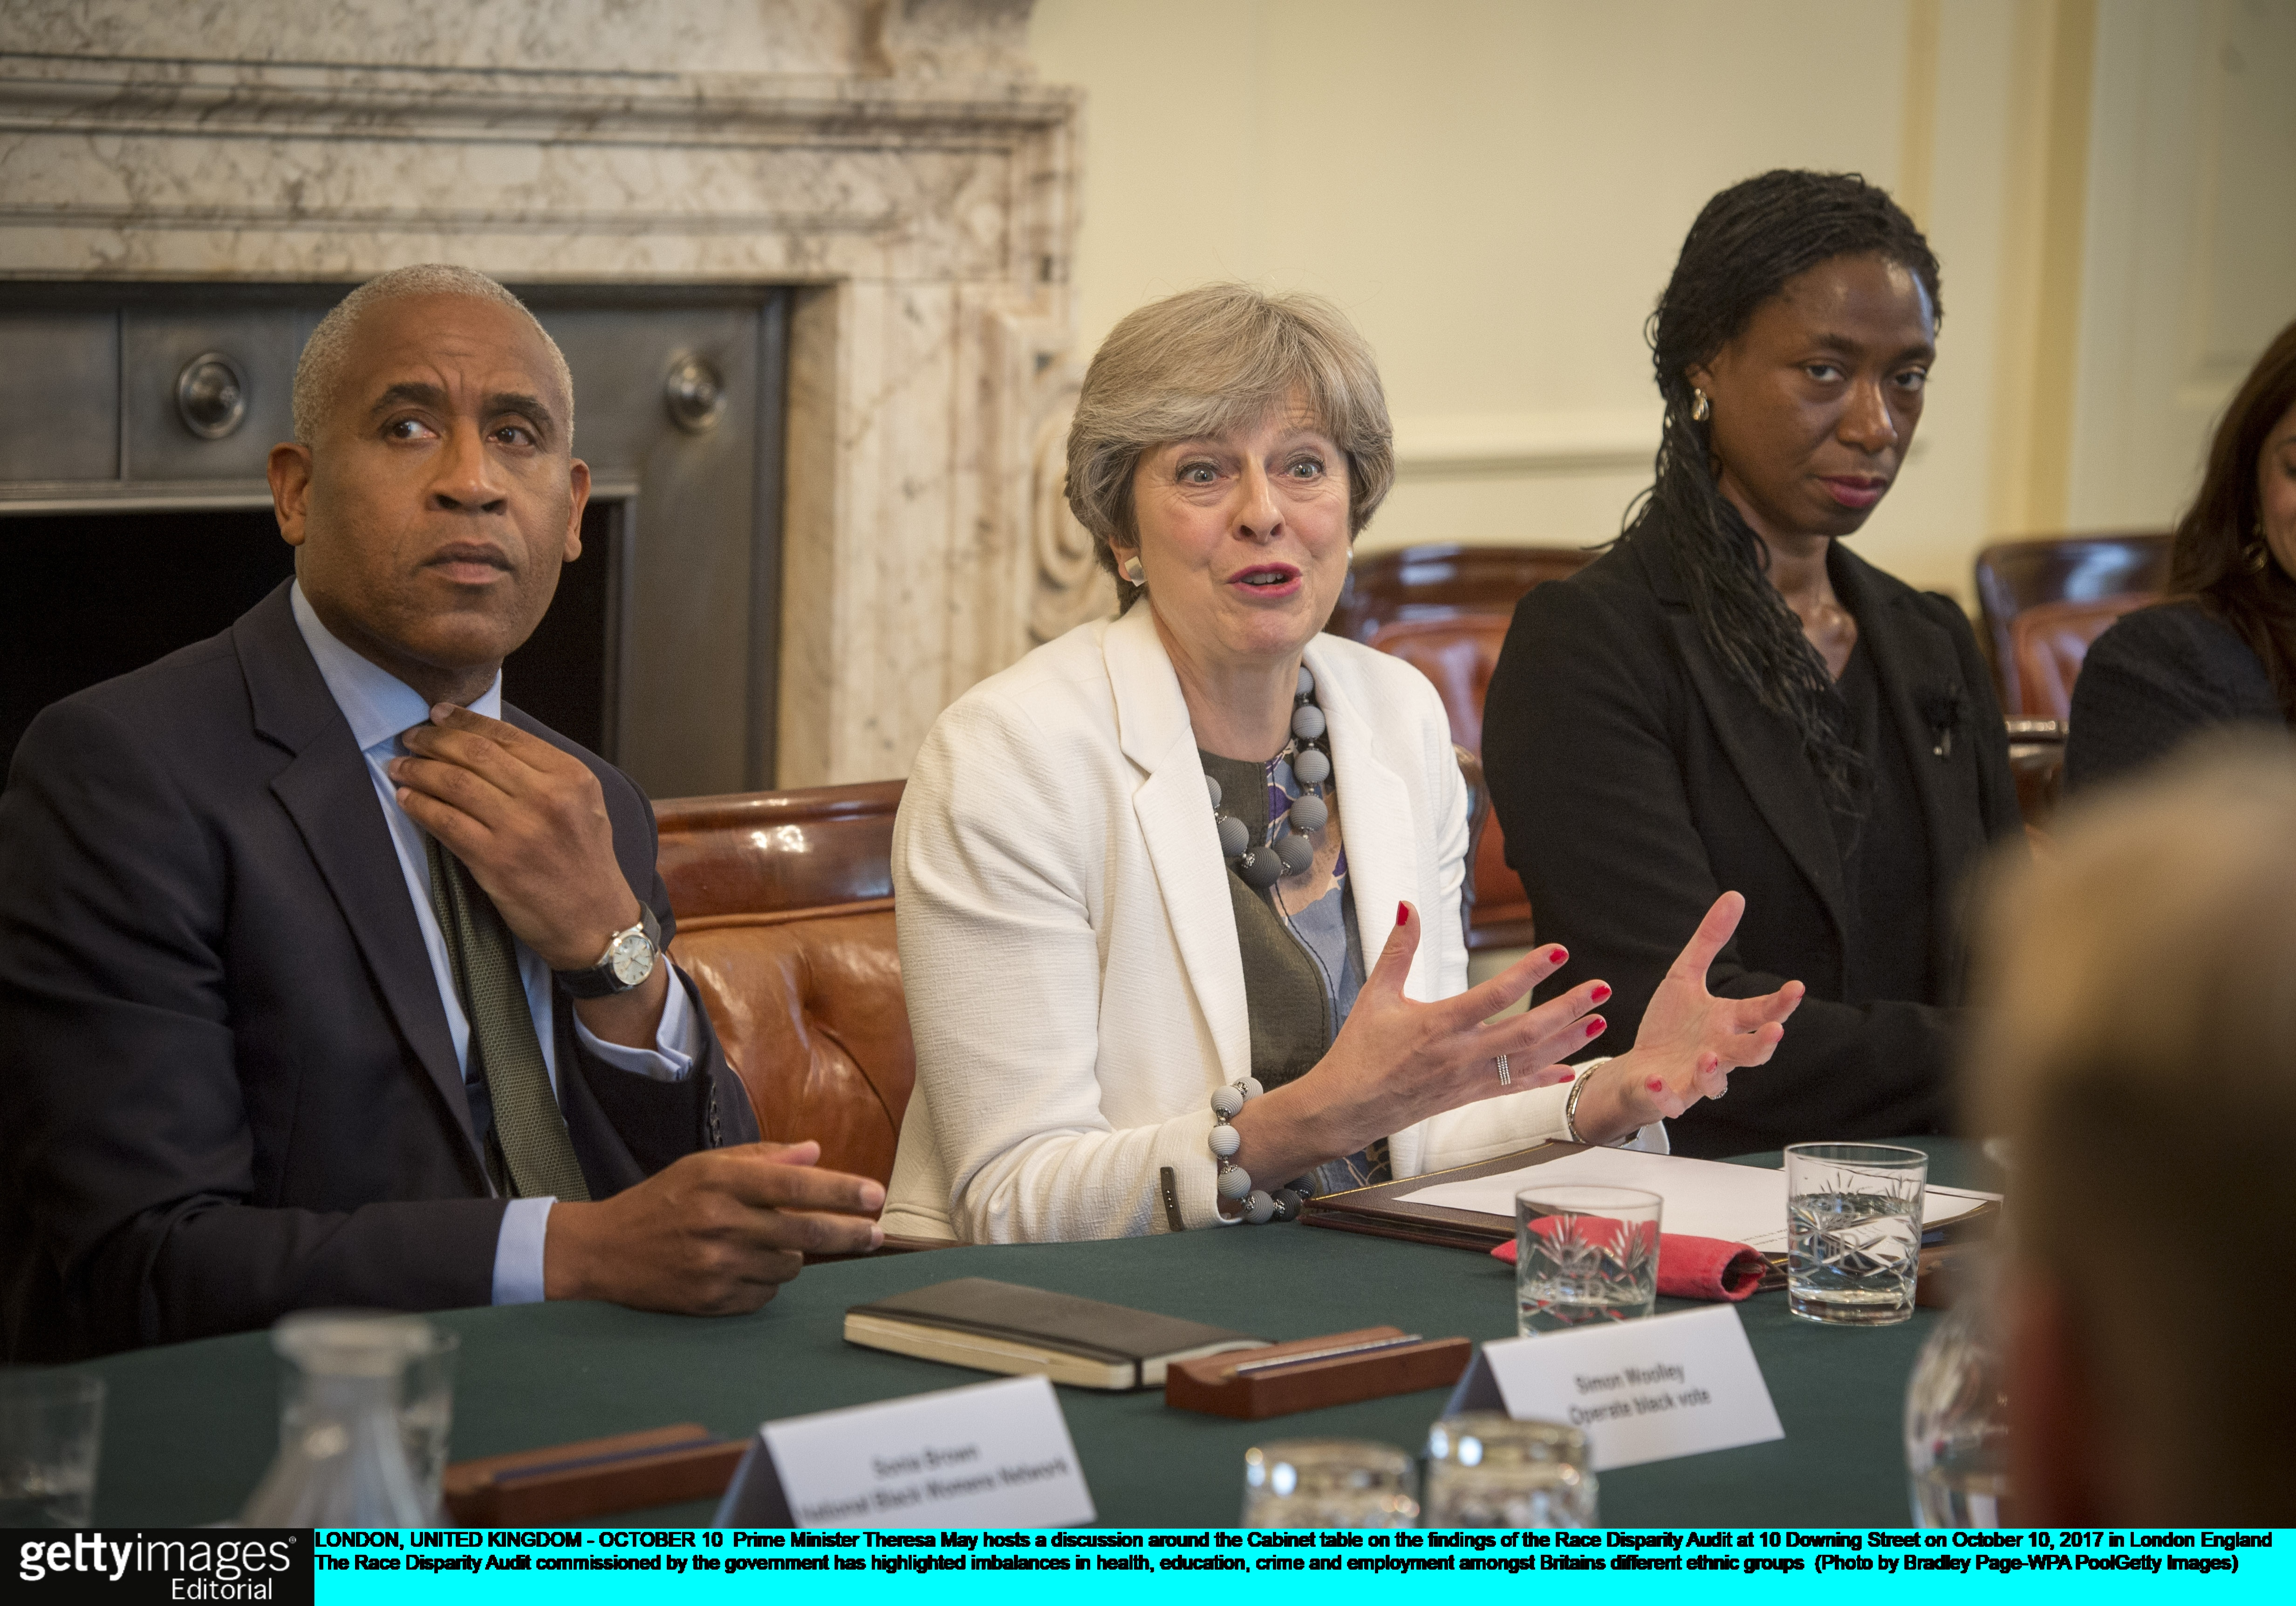 Theresa May discussed inequality in the Race Disparity Audit at No 10 yesterday